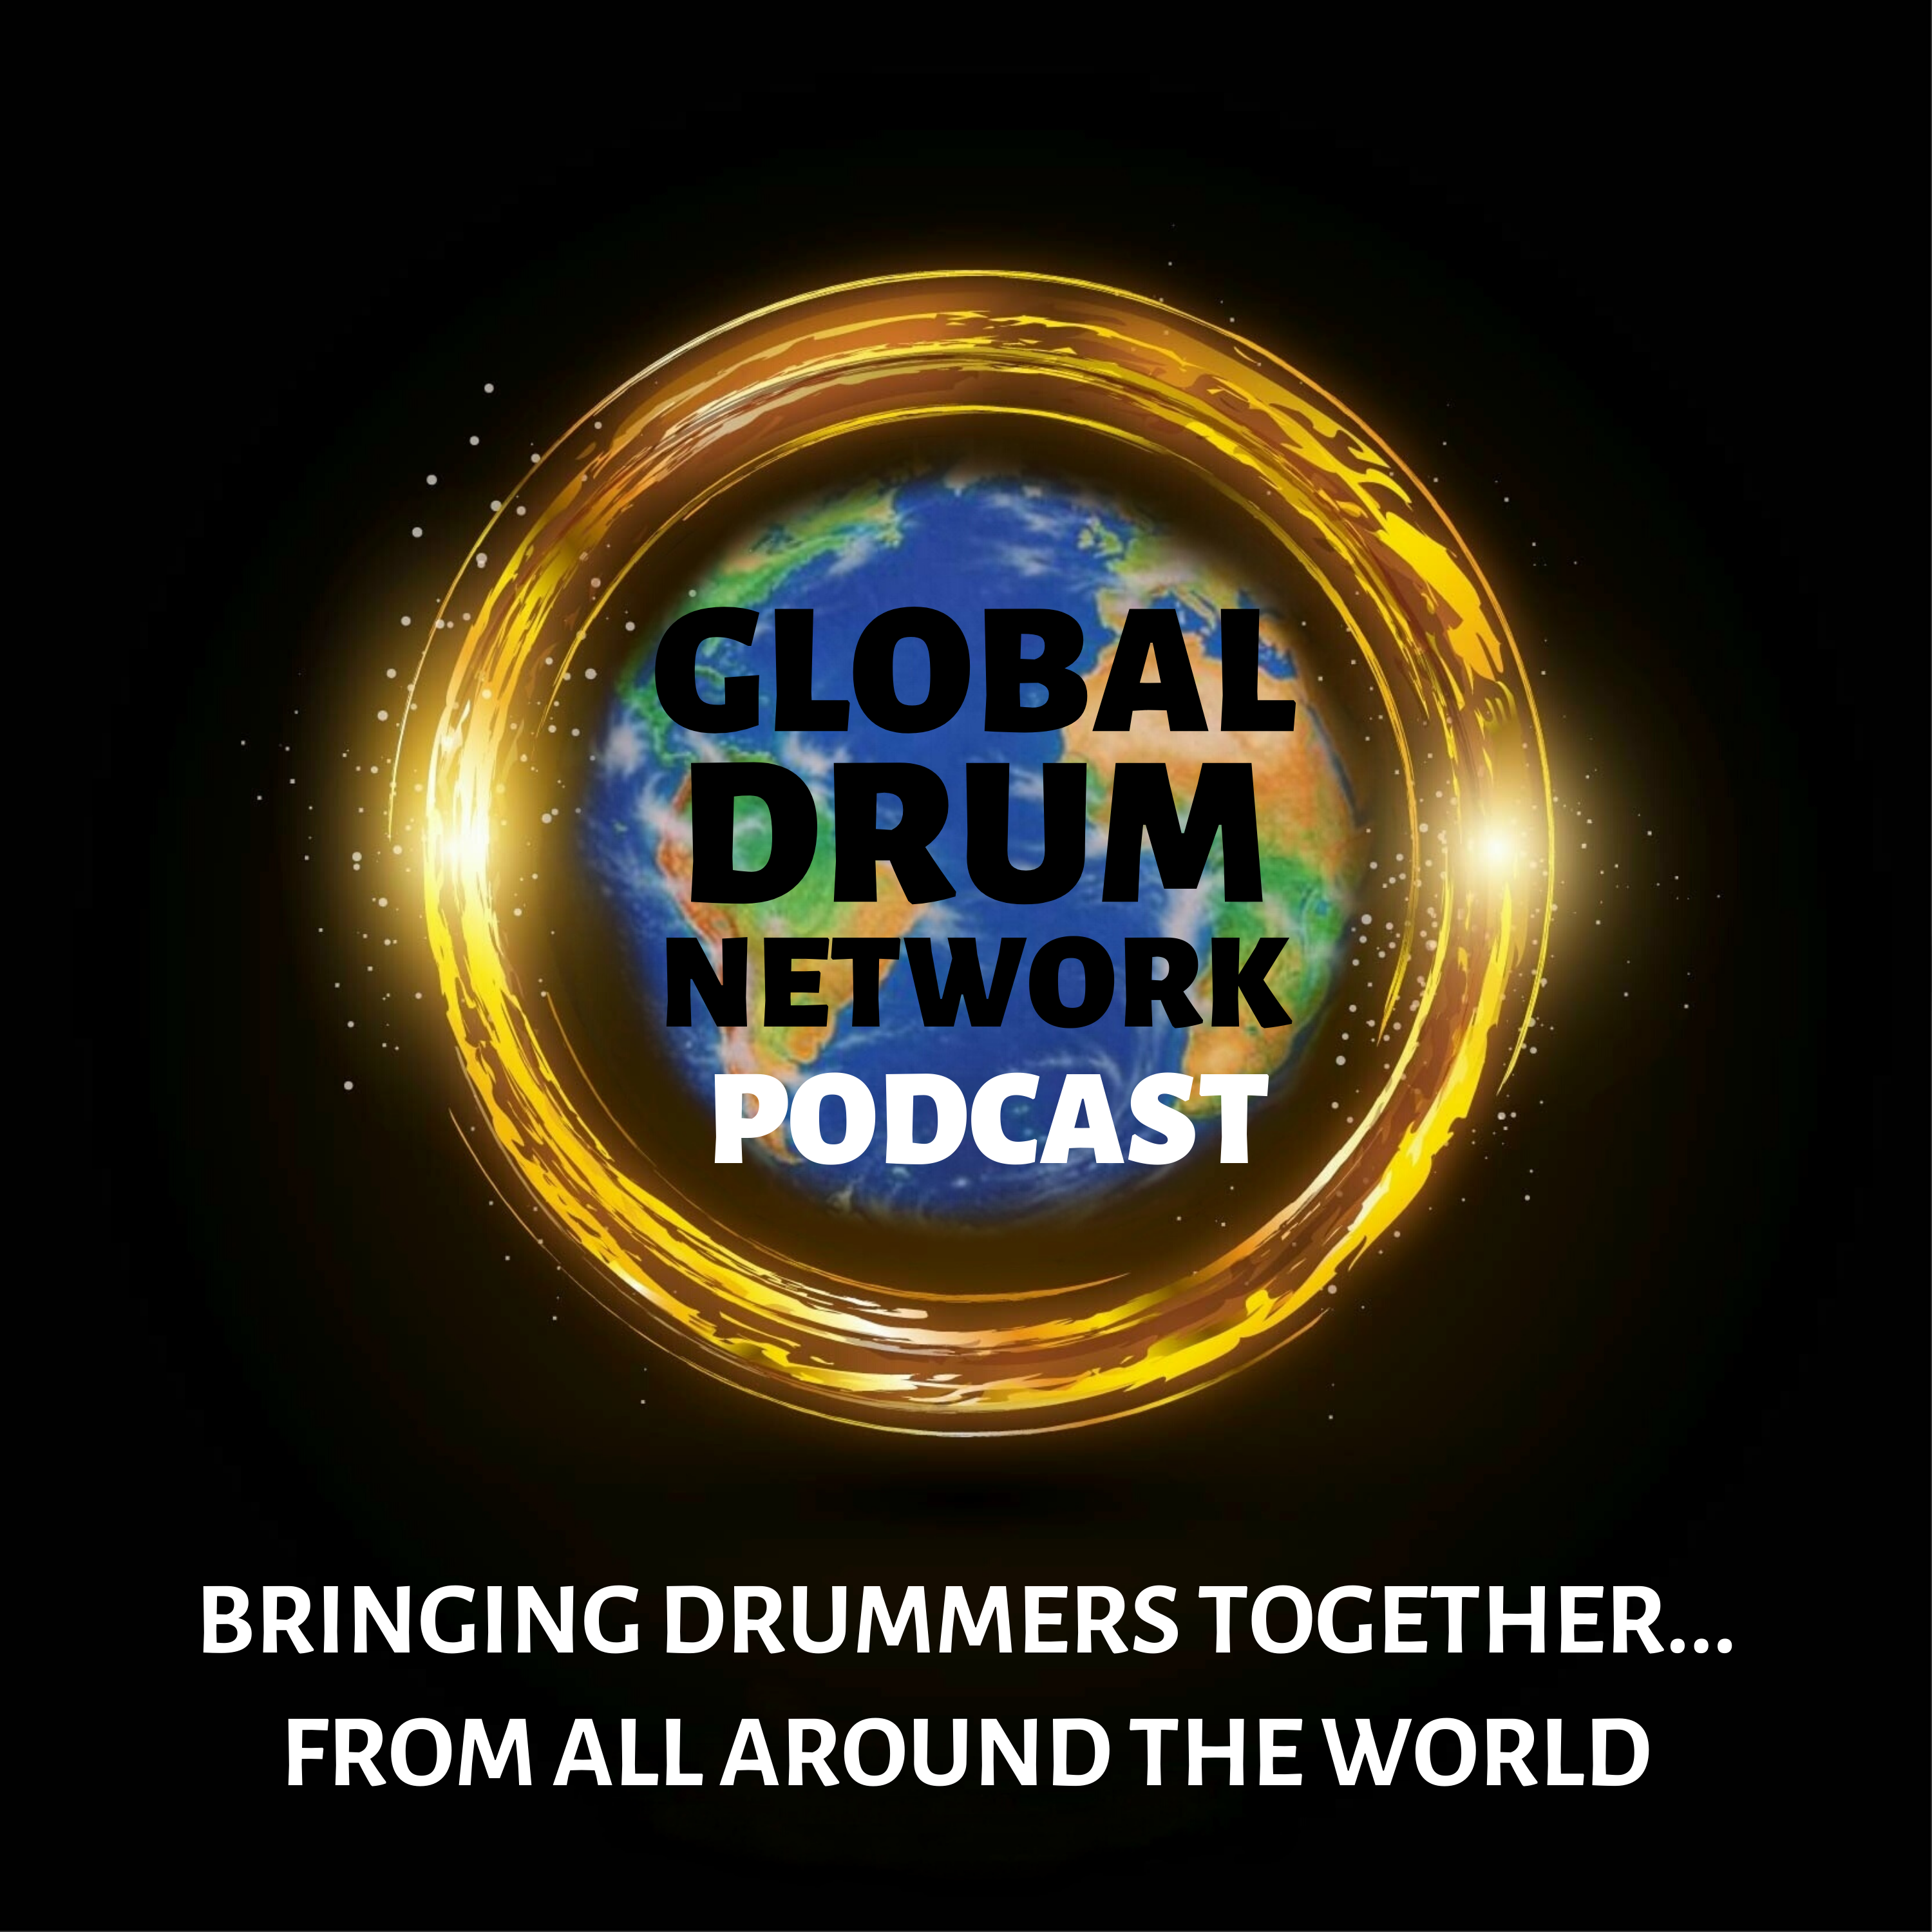 Global Drum Network - The podcast bringing drummers together ... from all around the world